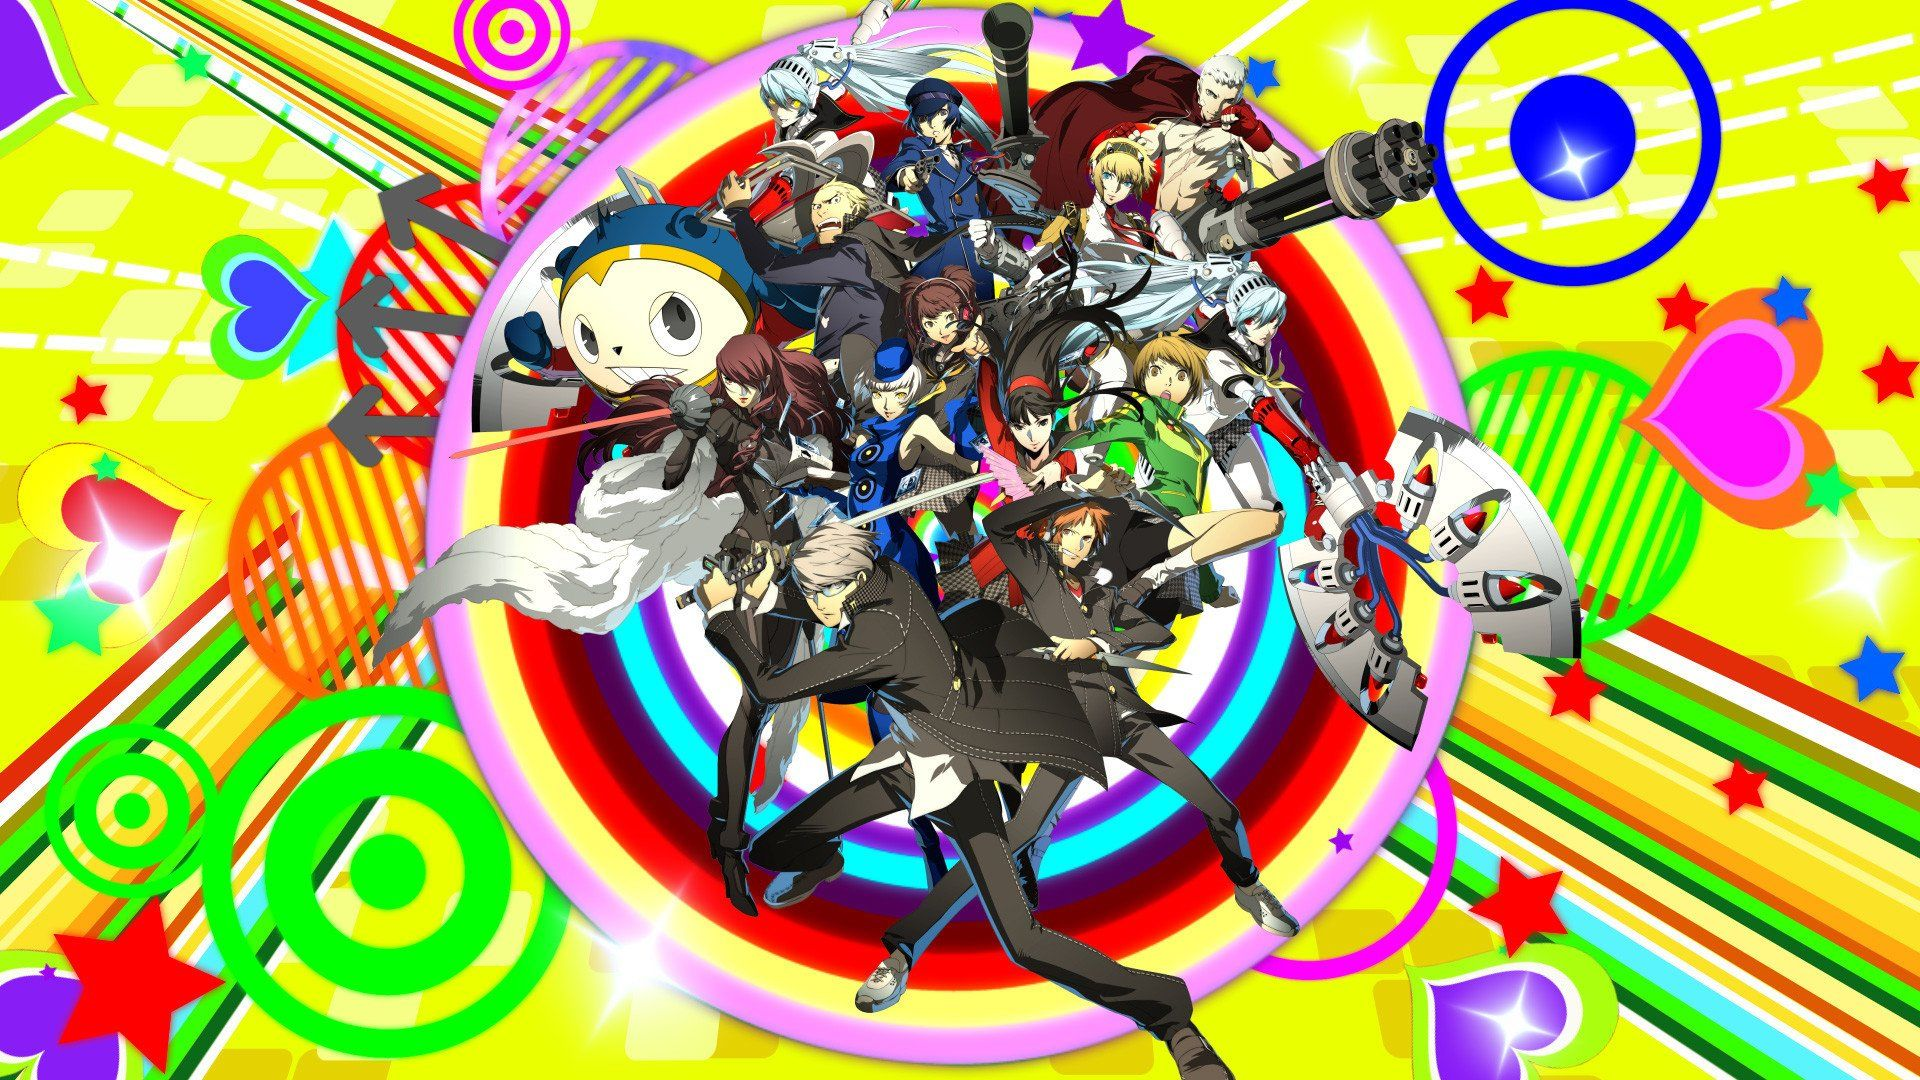 Persona 4 Arena Wallpapers - Top Free Persona 4 Arena